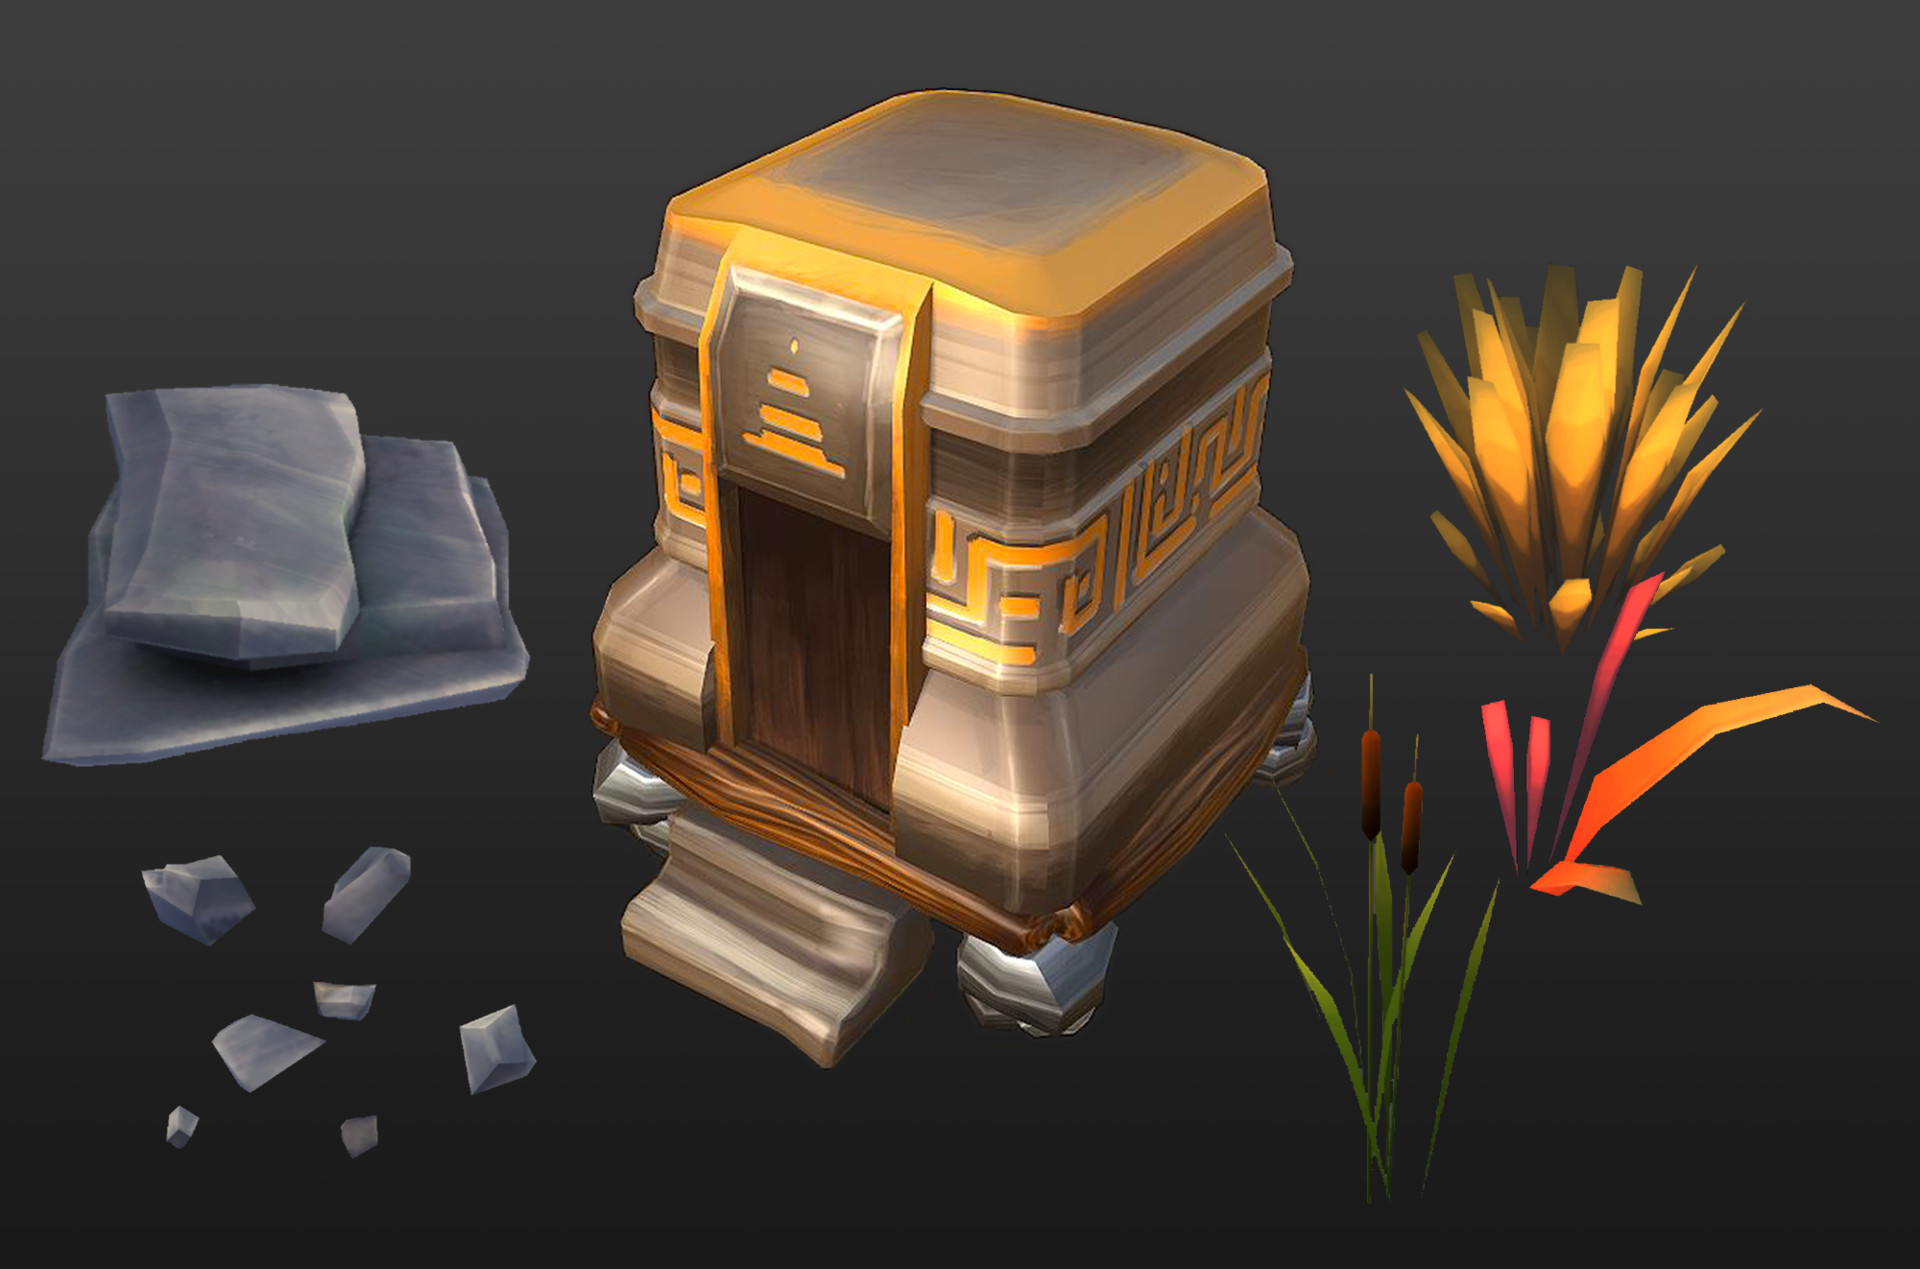 Creation, optimization and texturing of low-poly environment assets.